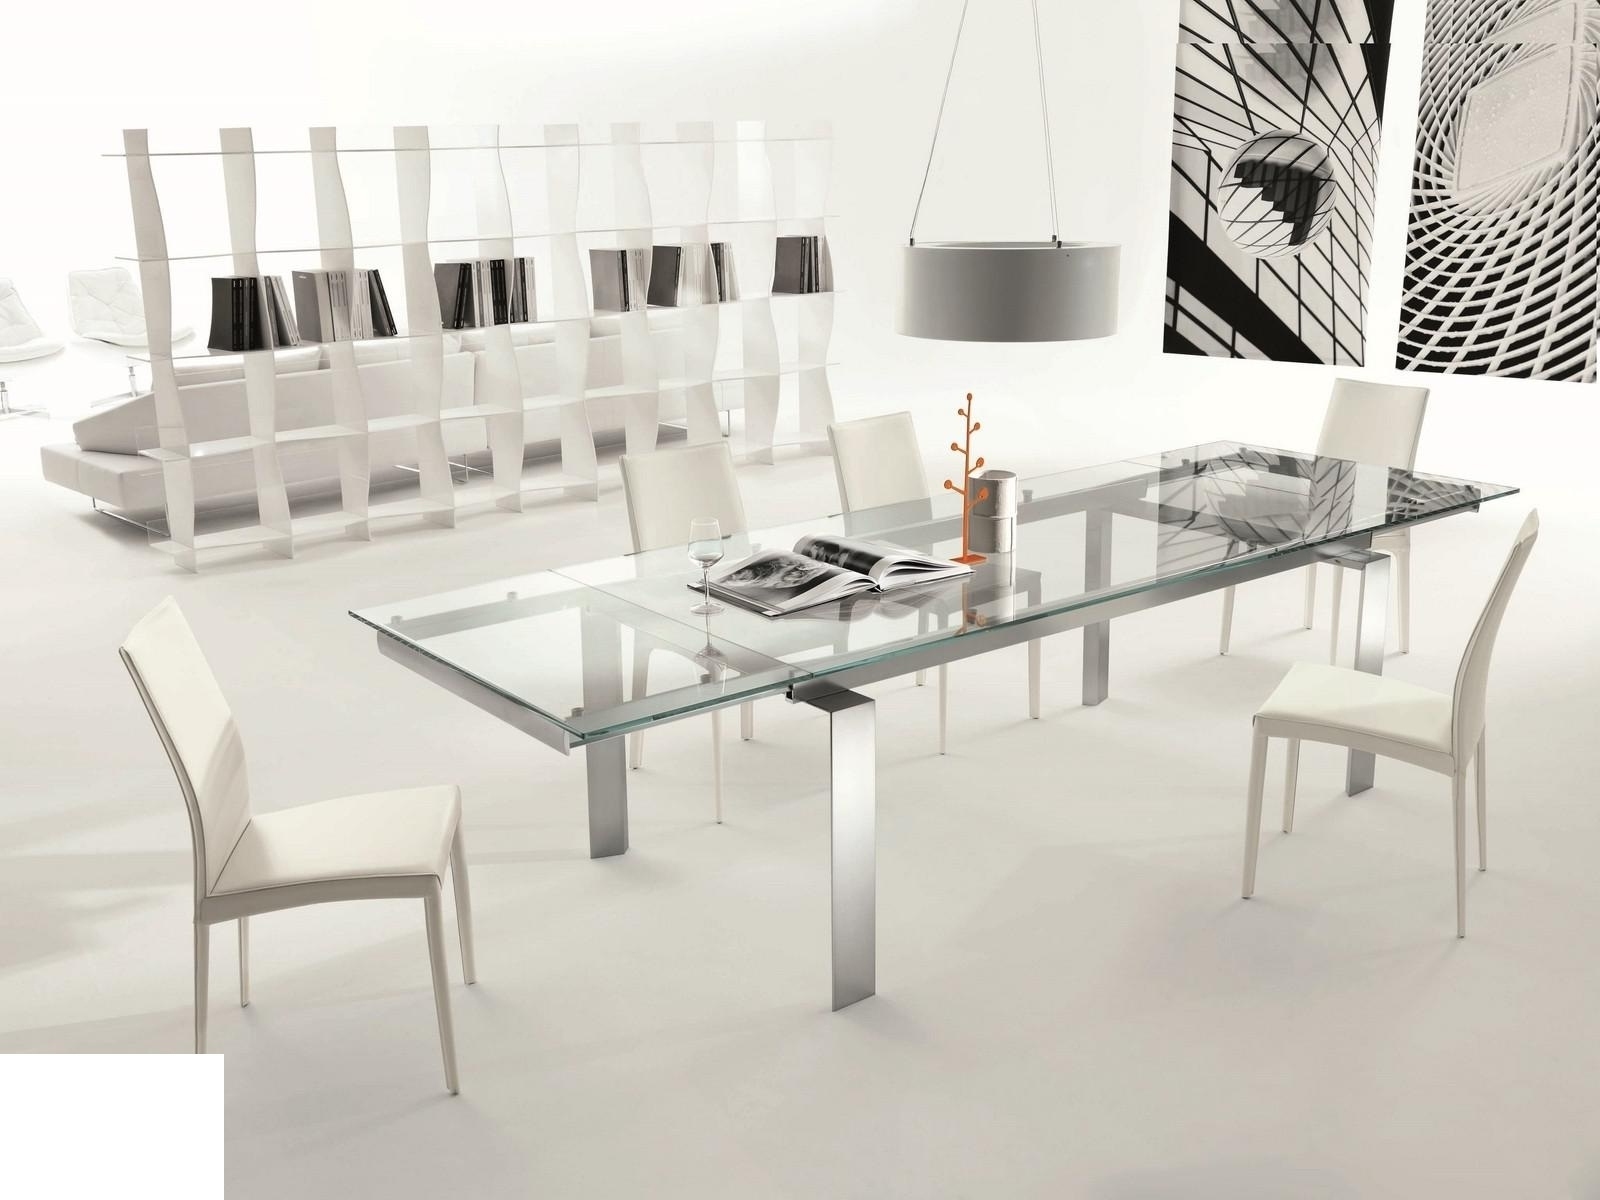 Extendable Glass Dining Tables And 6 Chairs For Well Known Chair: Extendable Glass Dining Table And 6 Chairs (View 13 of 25)